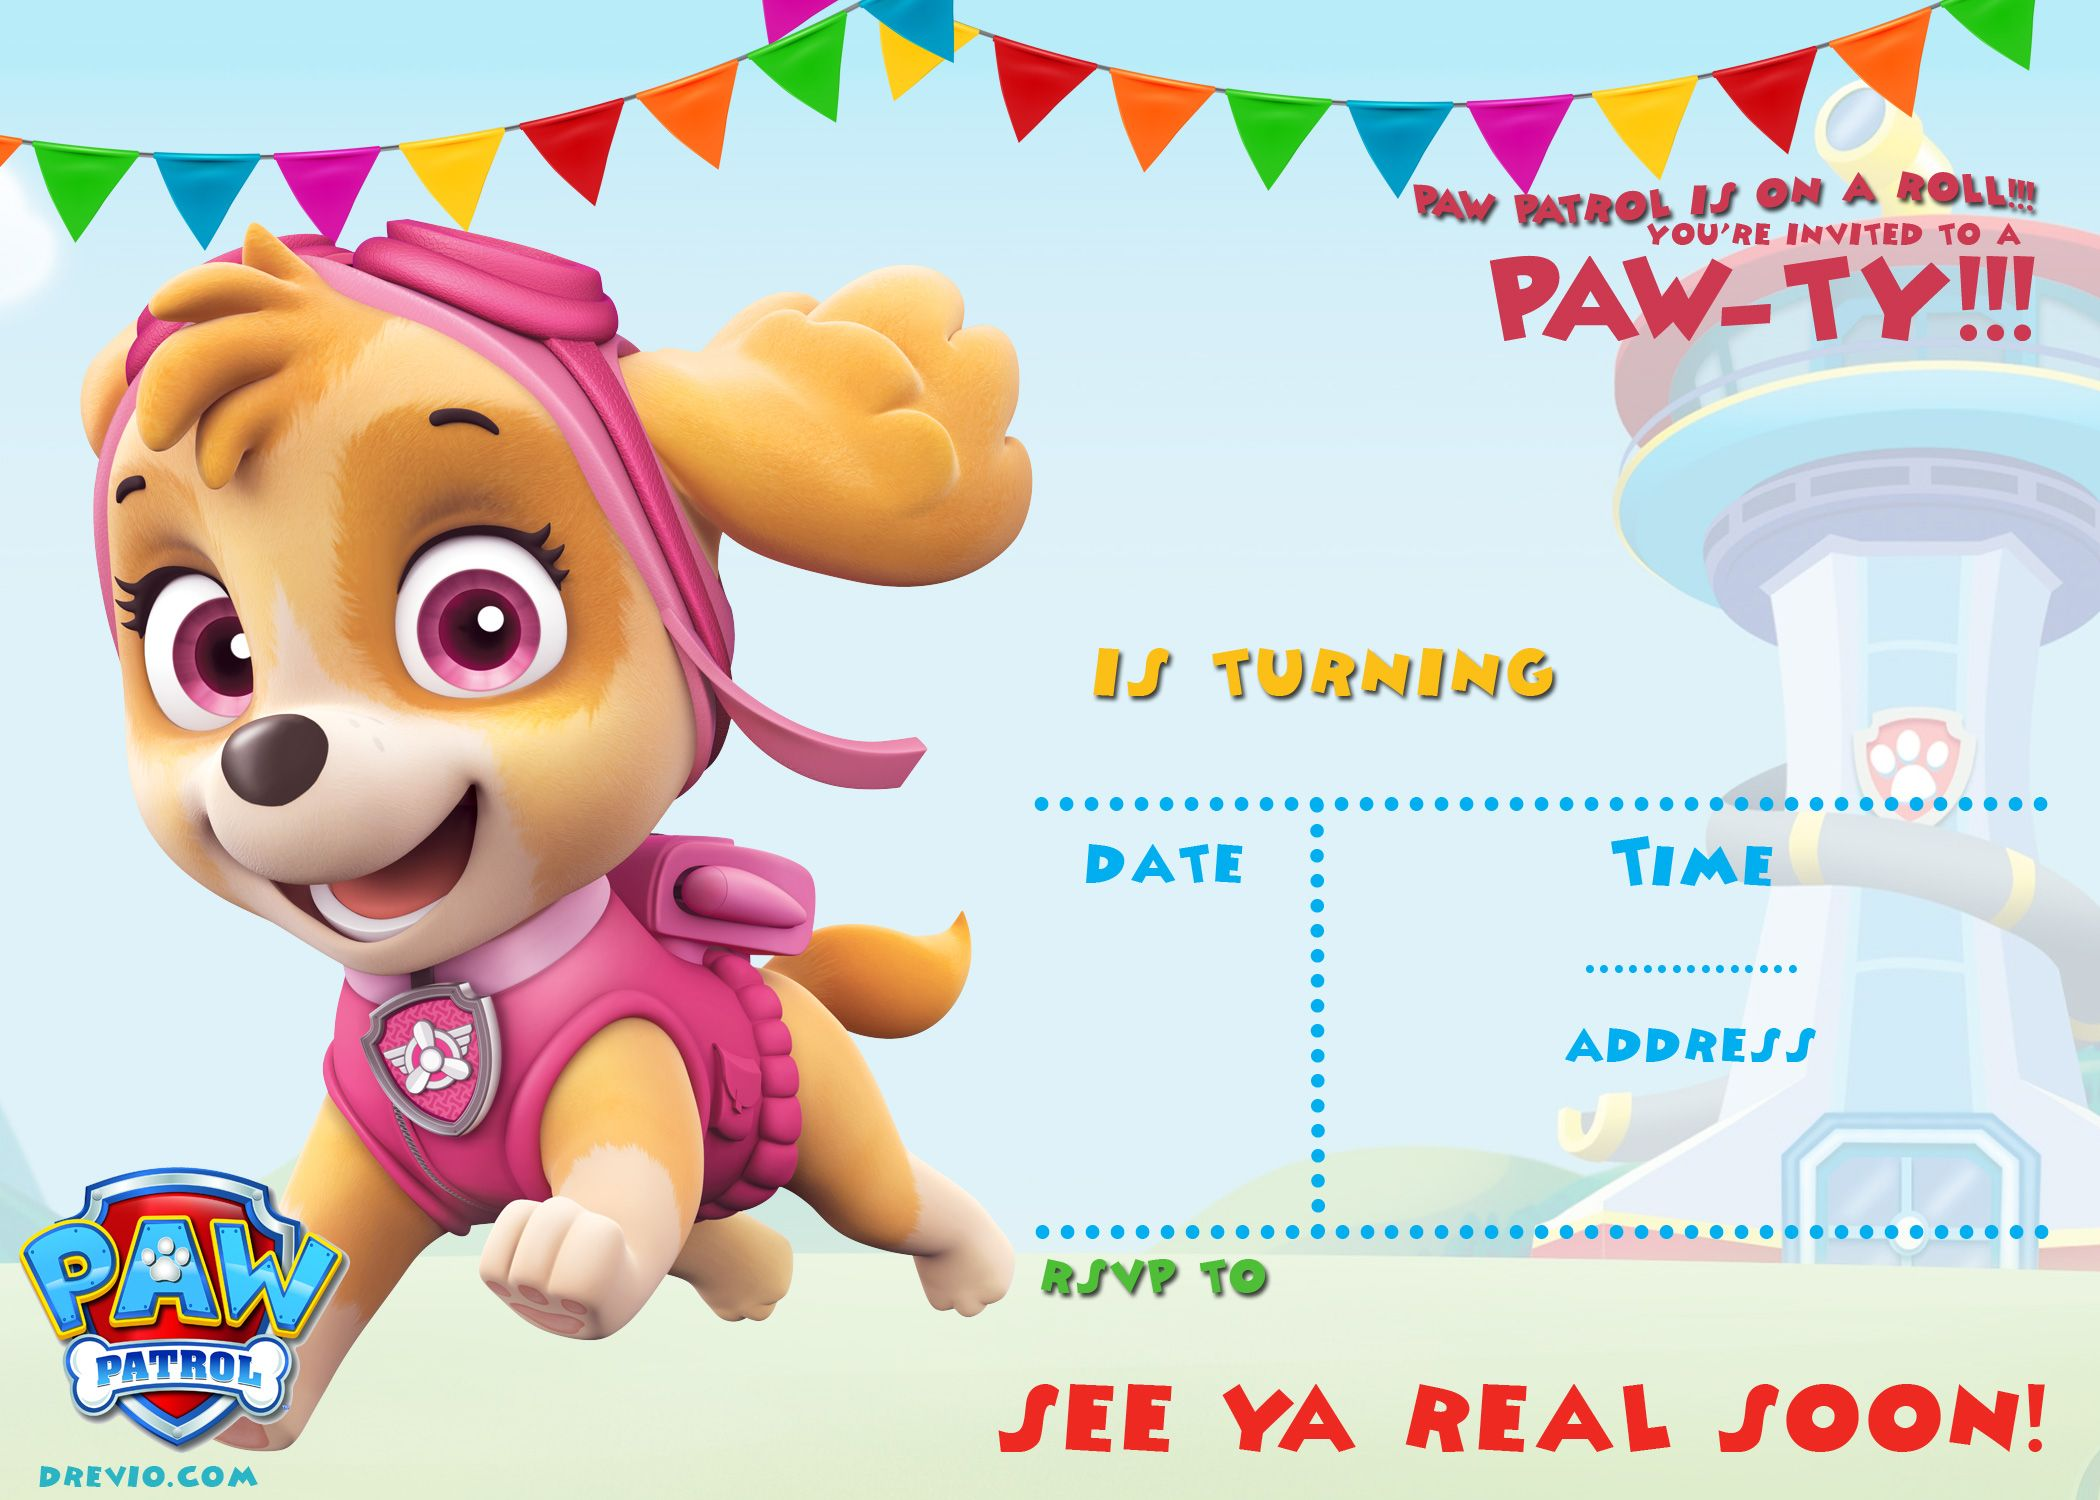 photograph relating to Printable Paw Patrol Invitations identified as Totally free Printable Paw Patrol Invitation Template - All